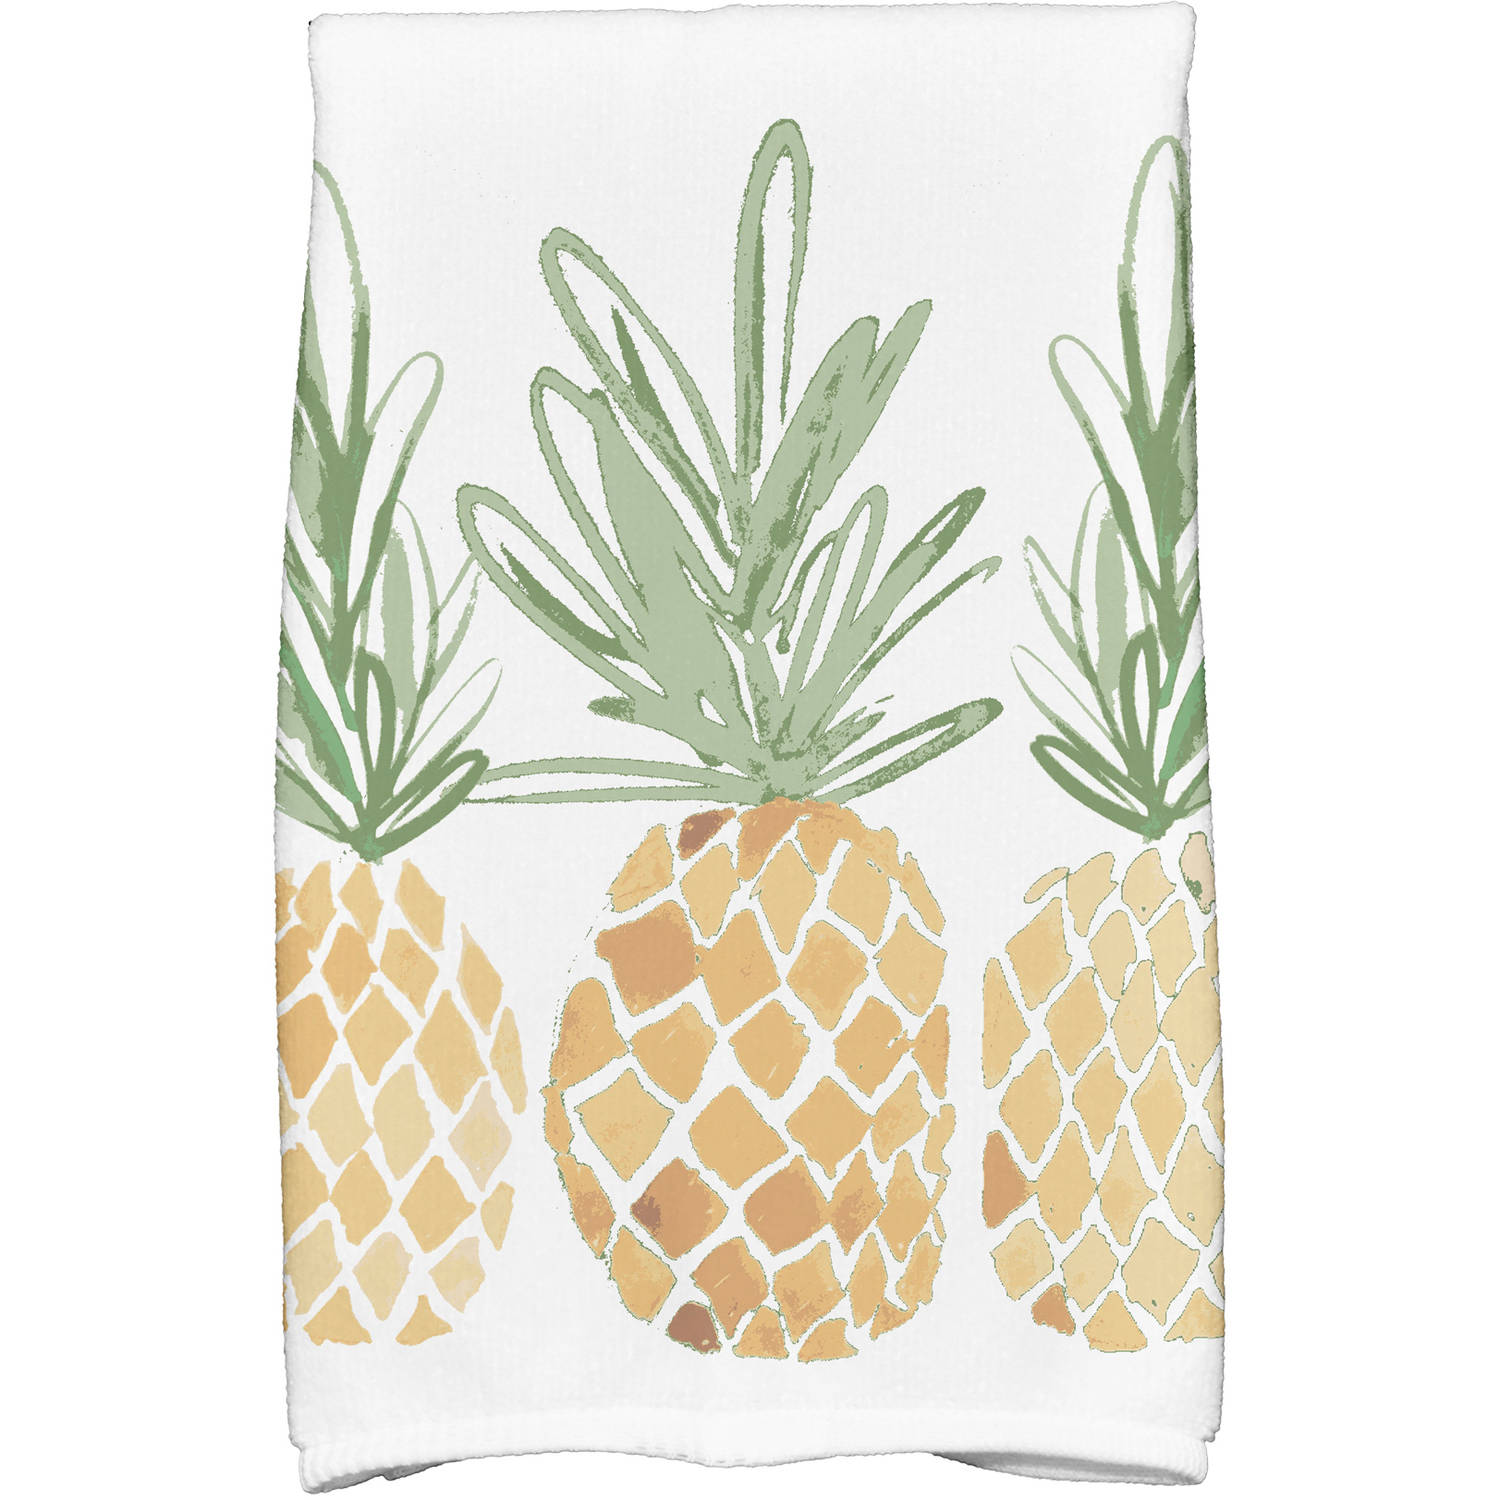 "Simply Daisy 16"" x 25"" Pineapples Geometric Print Kitchen Towel by E By Design"